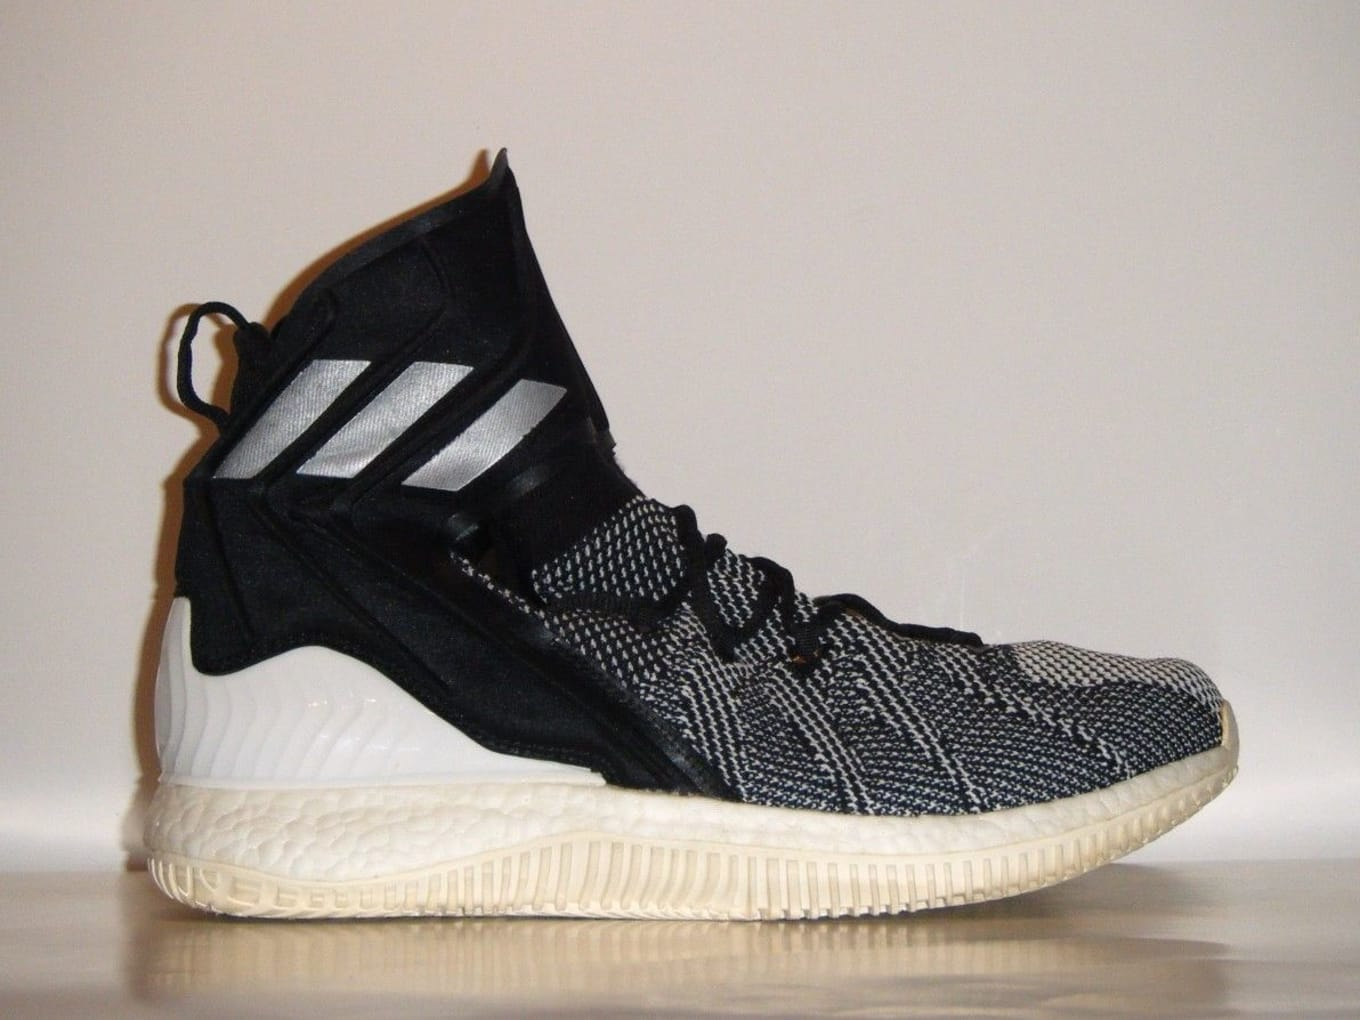 503e490947e Is Adidas Making Ultra Boost Basketball Shoes  A prototype surfaces on eBay.